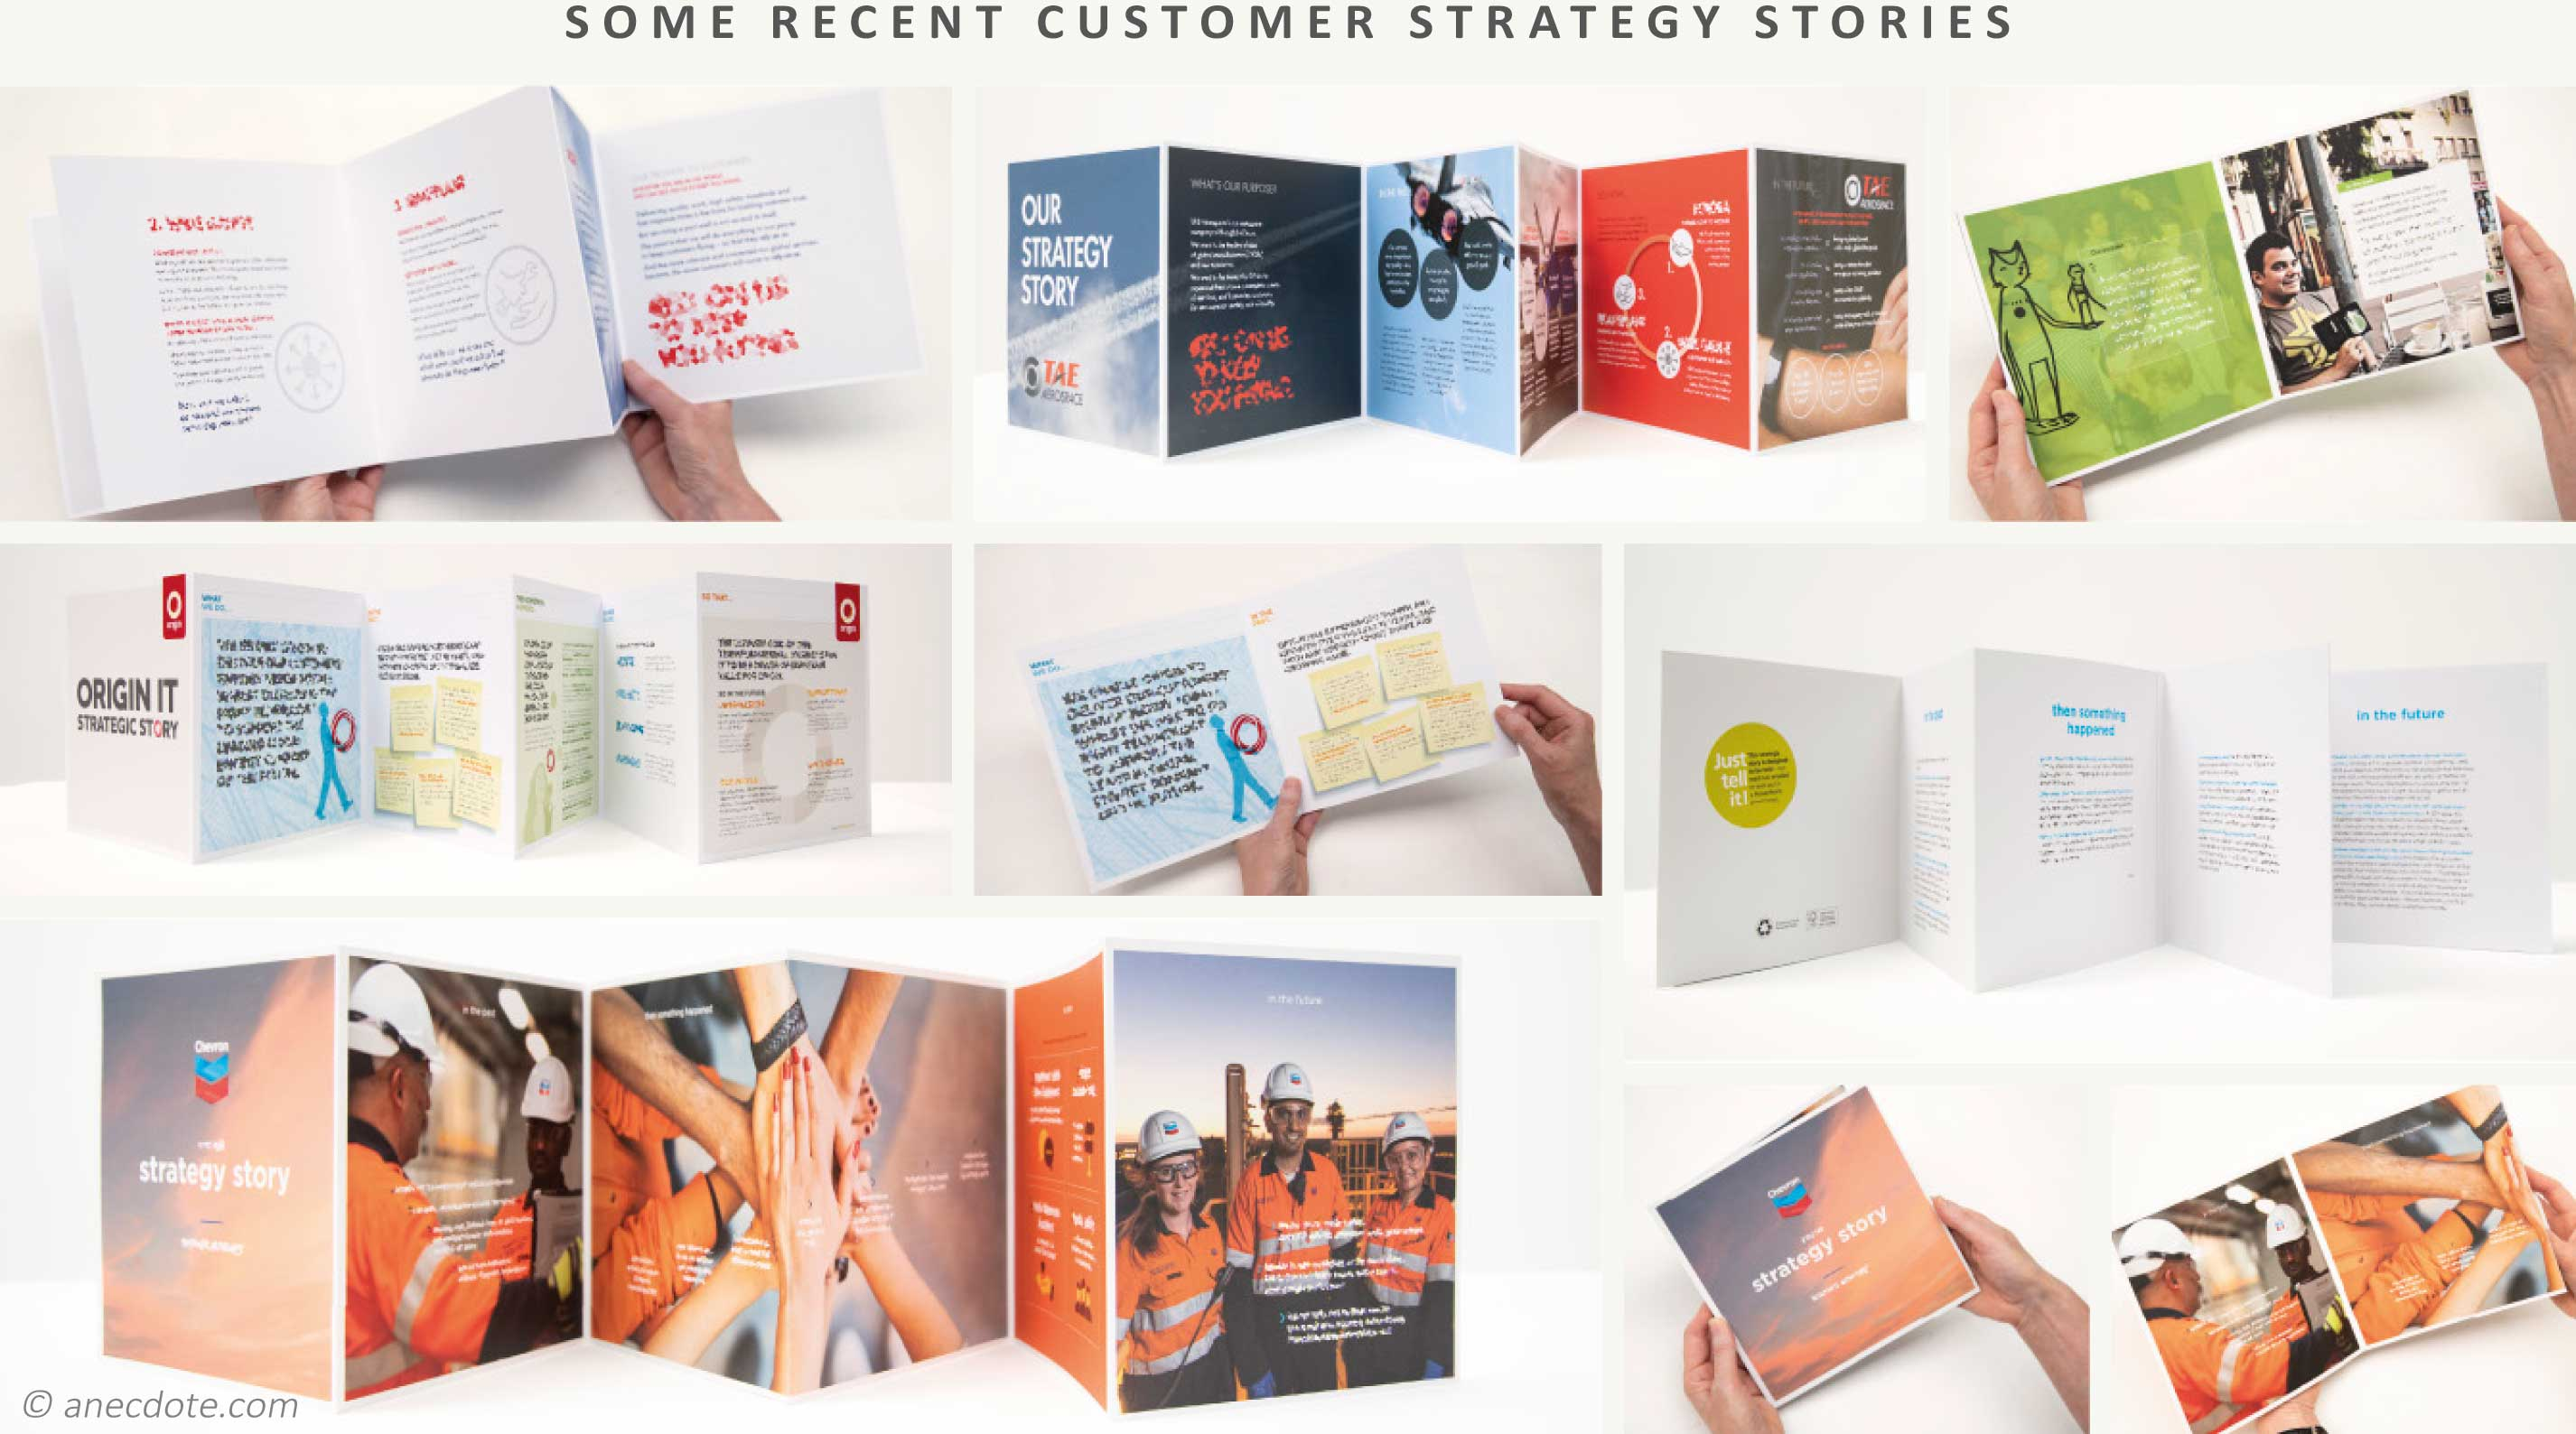 Some recent customer strategy stories